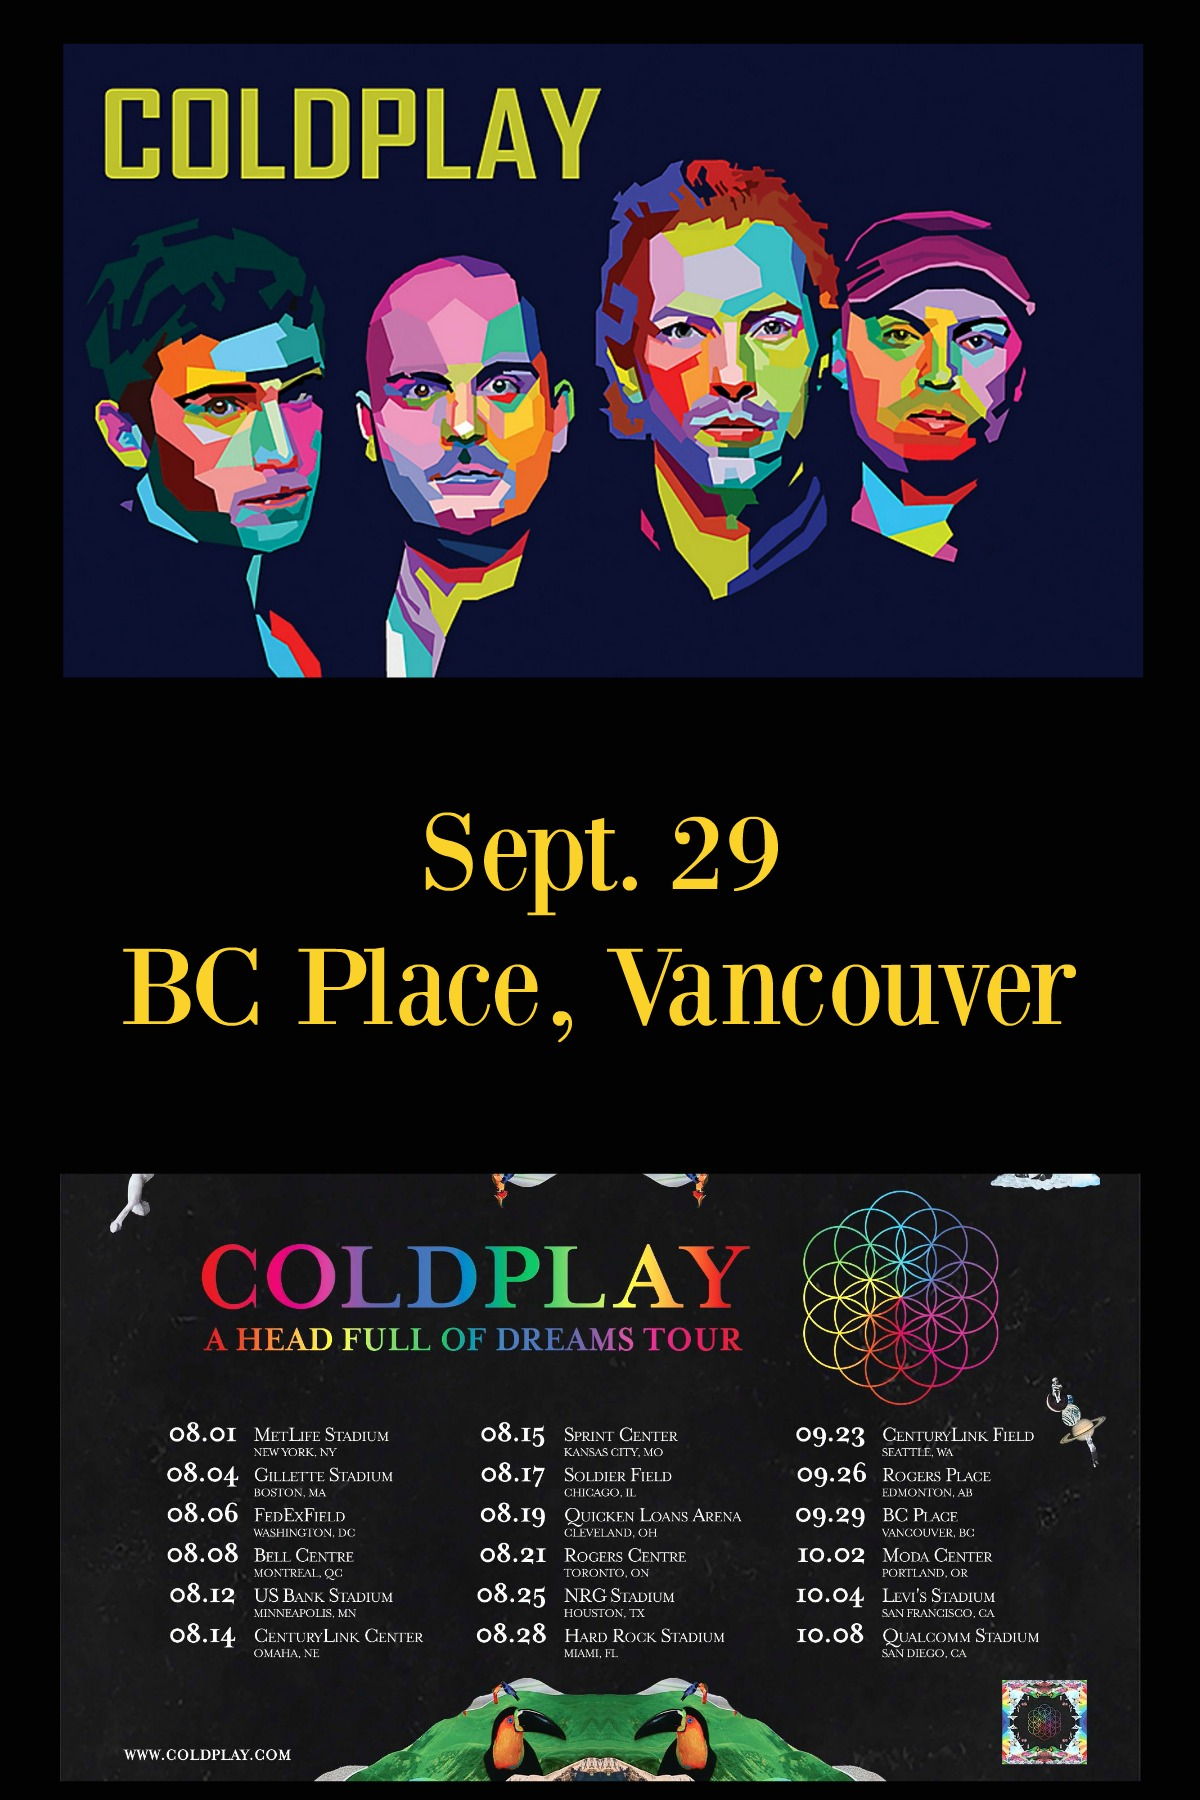 Coldplay Head Full of Dreams Tour at BC Place, Vancouver, BC